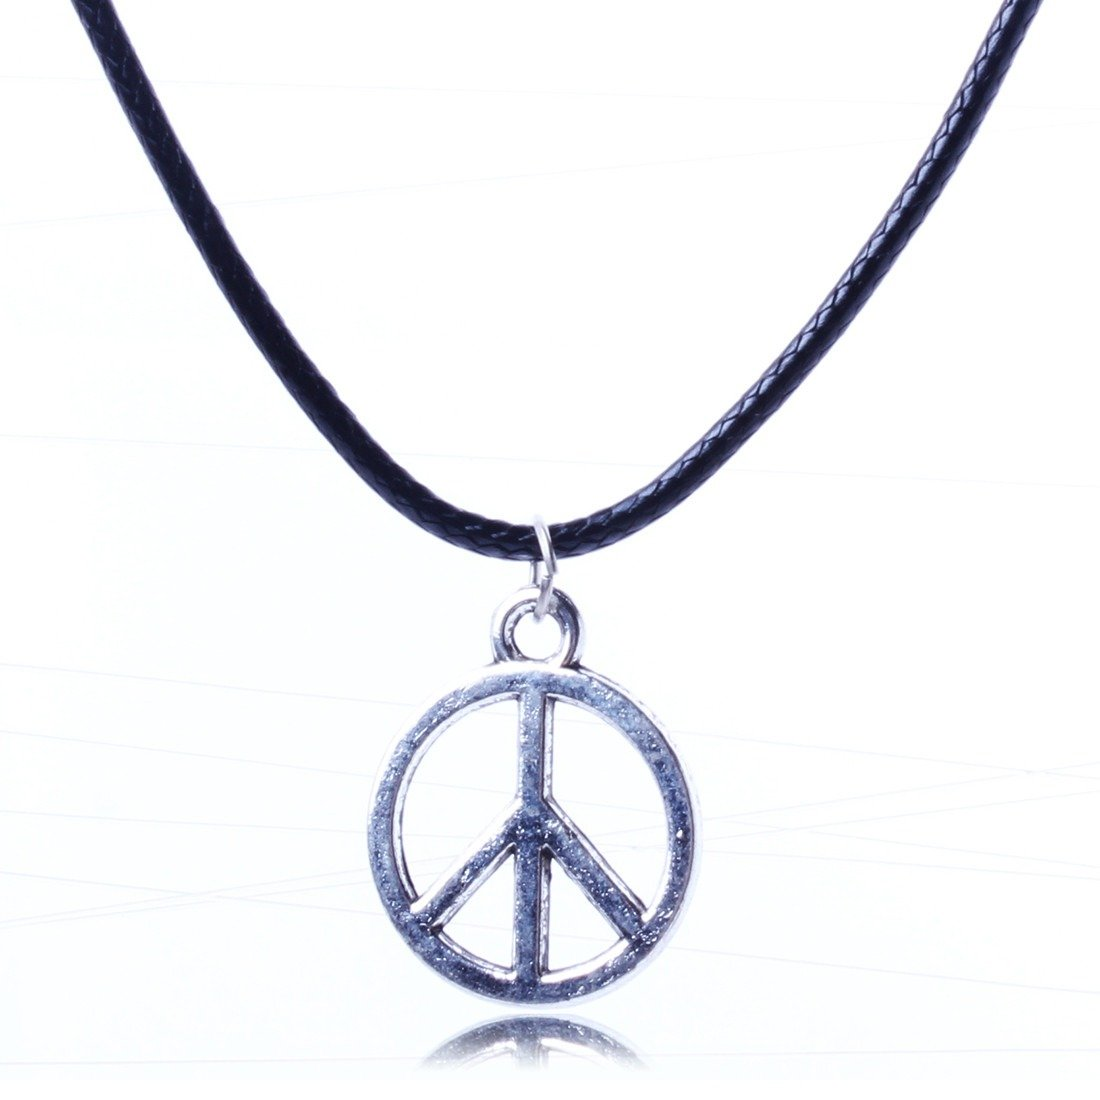 Qiyun Dangle Silver Peace Sign Slide Charm Pendant Black Leather Rope Necklace Argent Glissie re Signe Paix Corde Cuir Noir Collier W005N1456